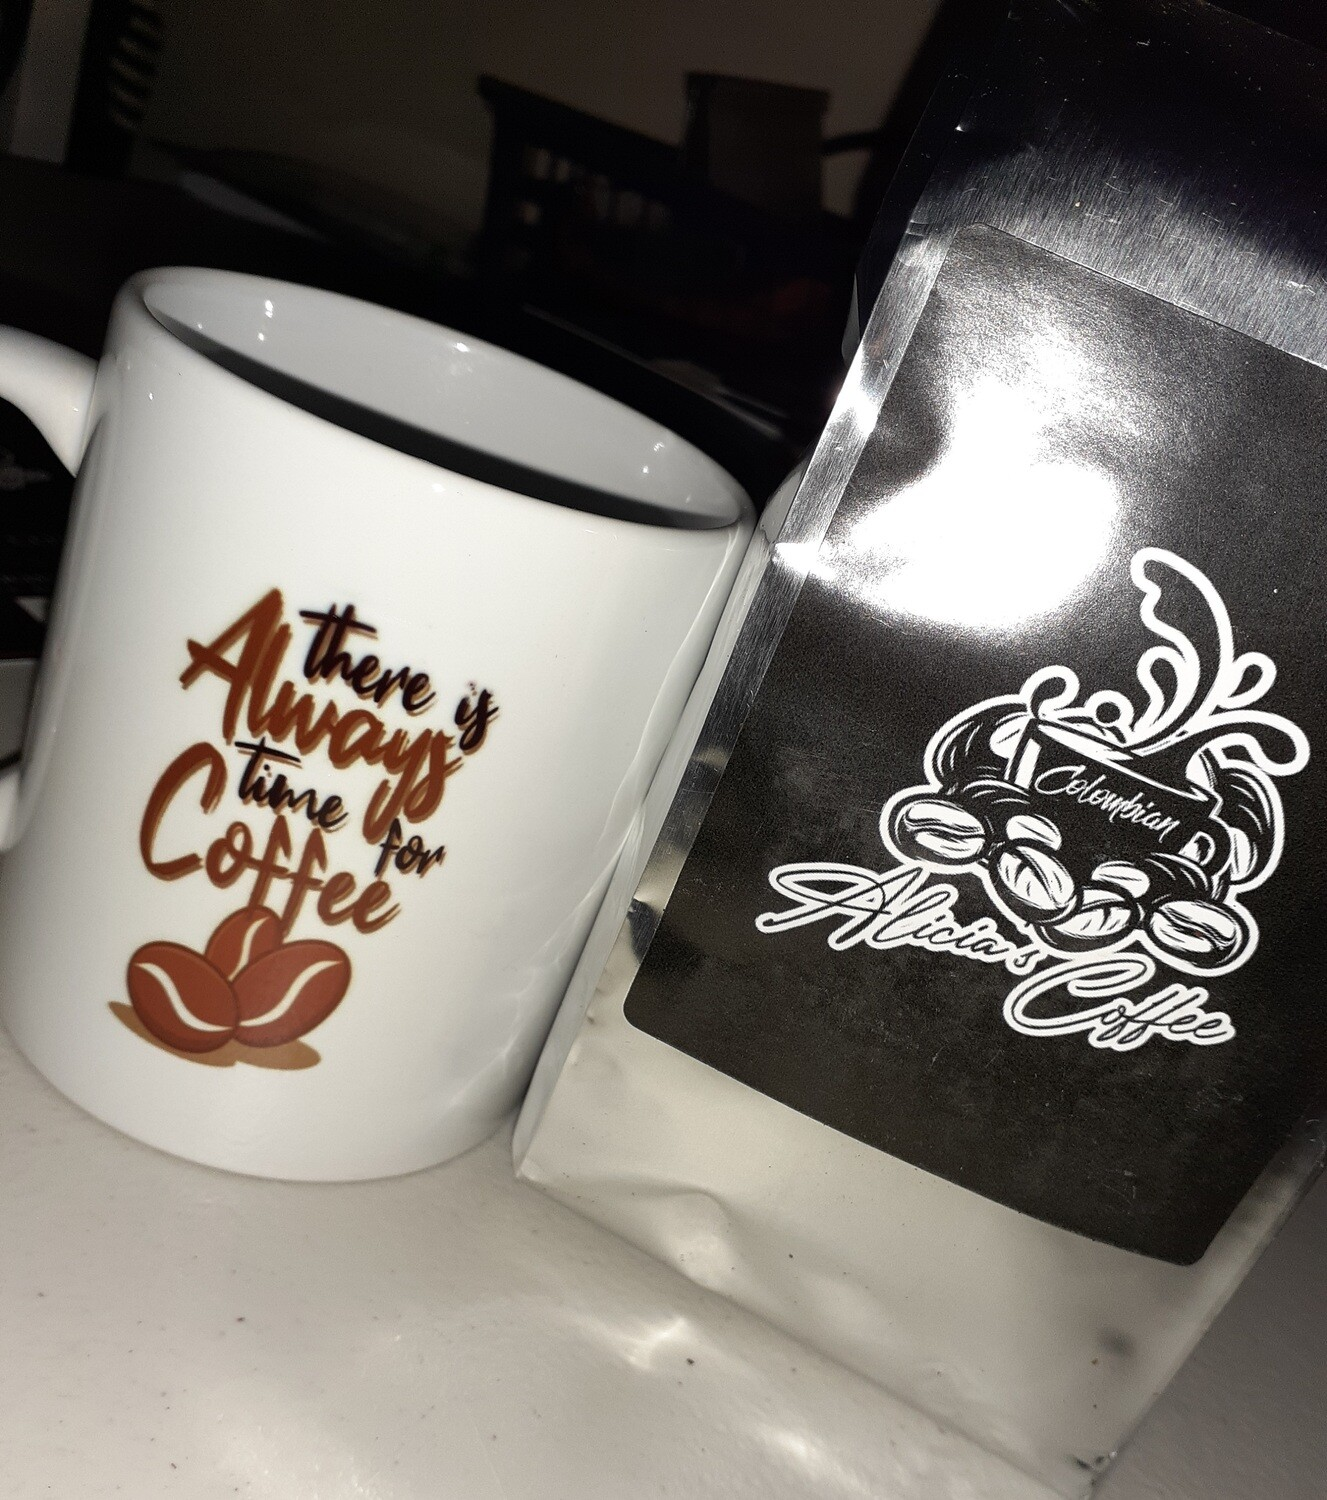 There's always time for coffee(mug)